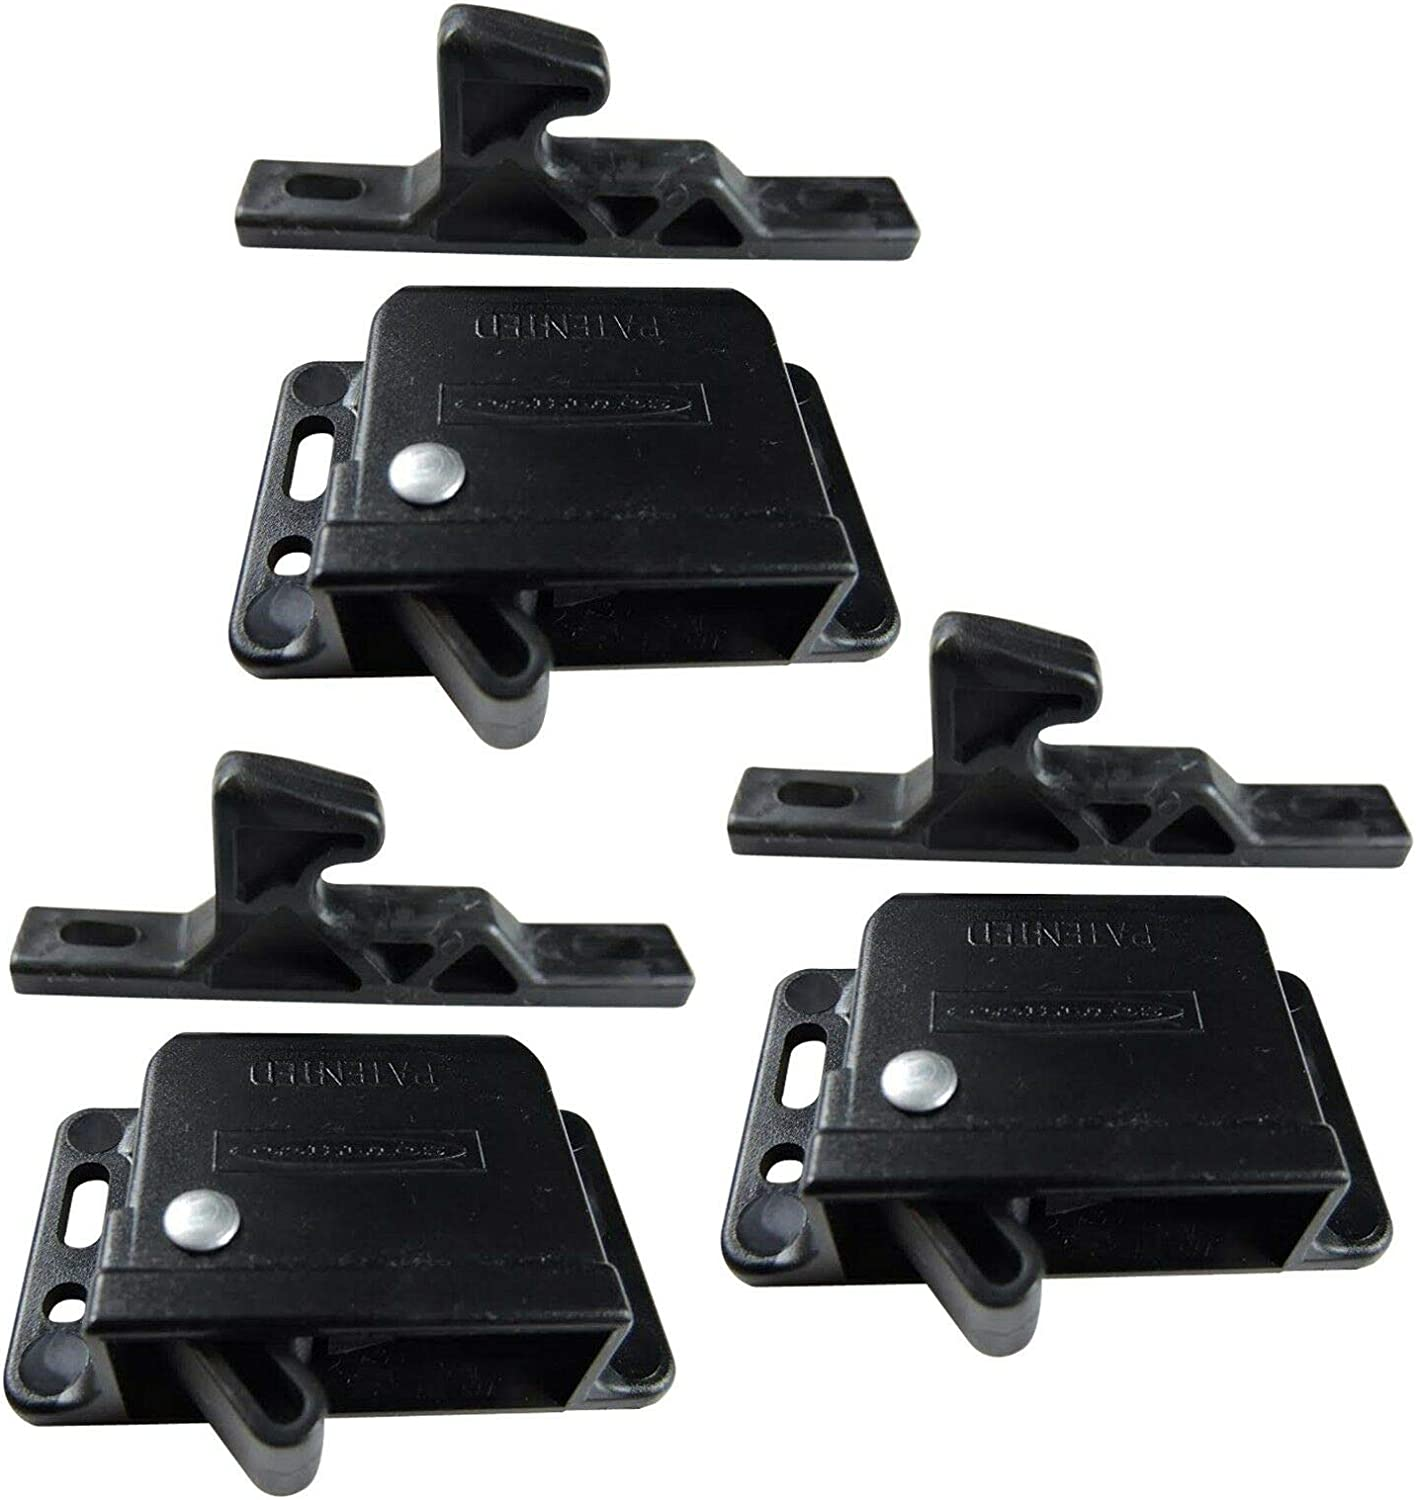 3-Pack of Factory outlet 10 Pound Black Grabber for Catch RV Latches Purchase Motorhome